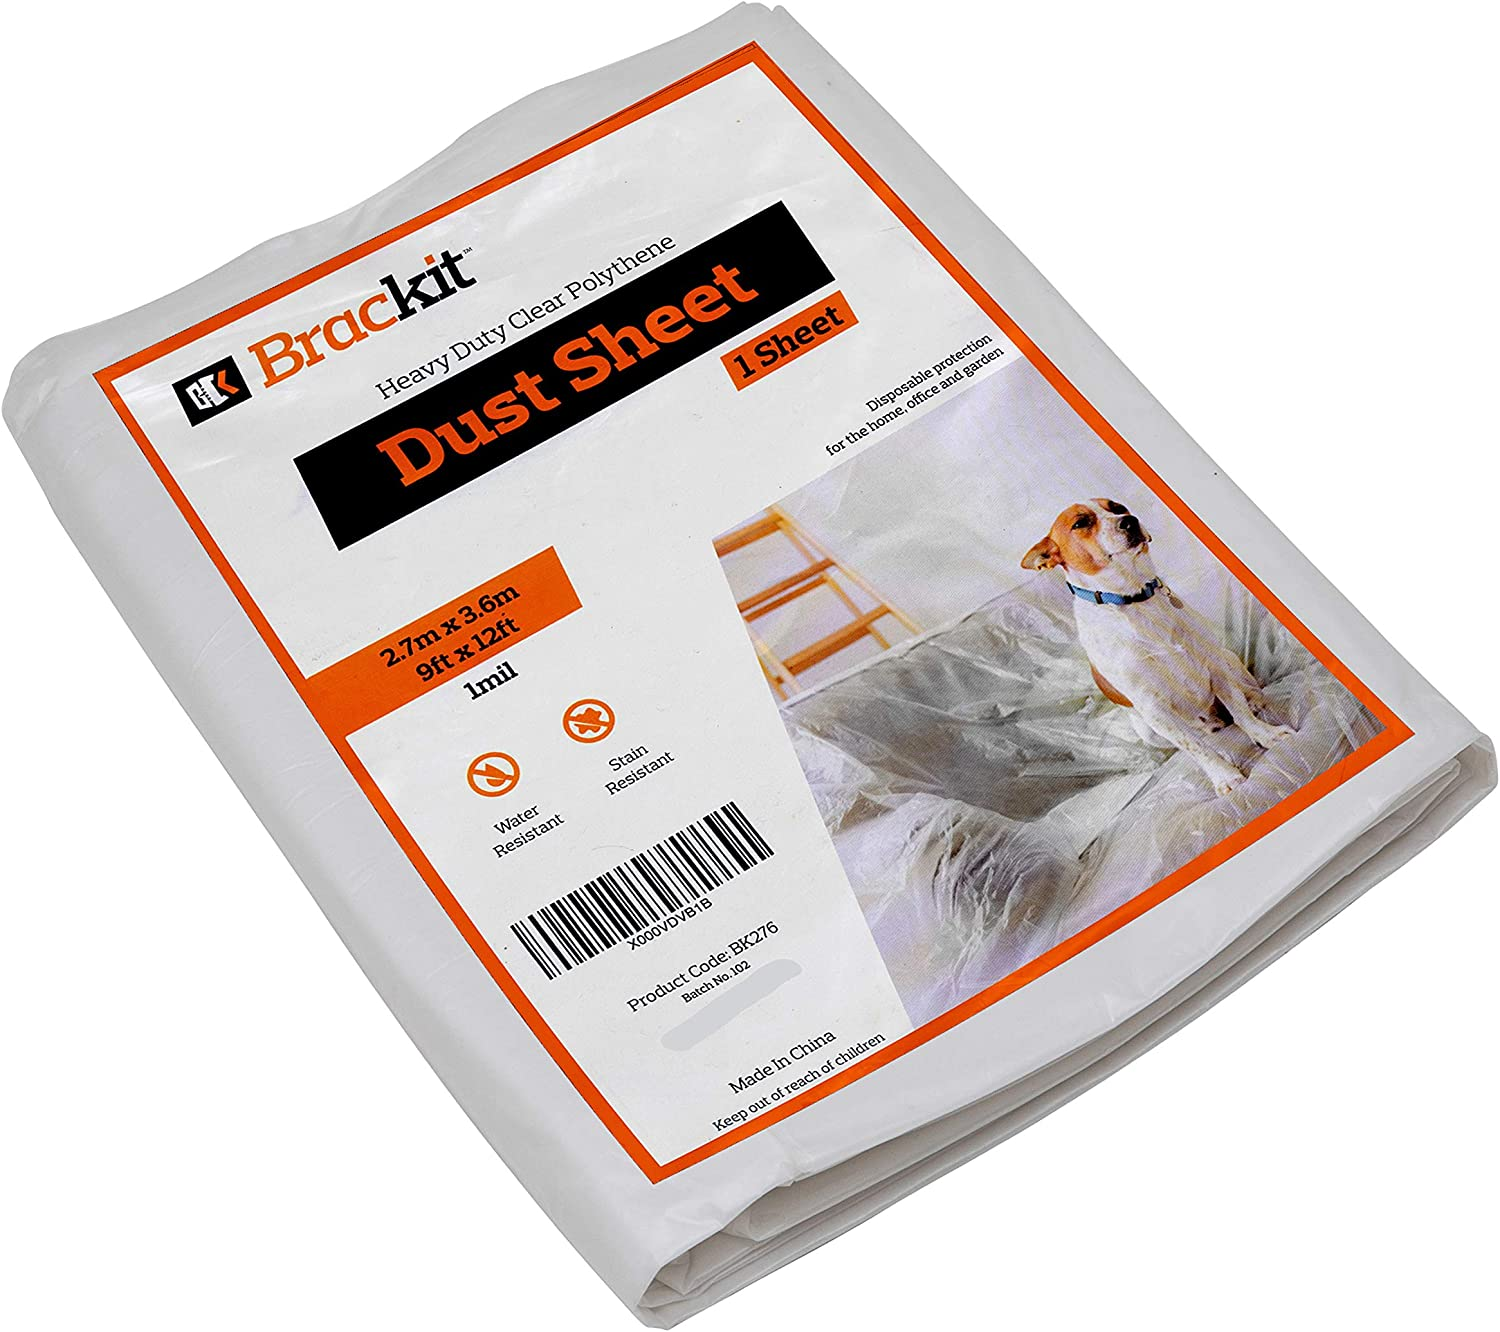 3.6x2.7m Lightweight Waterproof Brackit Dust Sheet, Durable Heavy Duty 1 Disposable Shield for Painti - Protective Furniture Cover 9 x 12ft